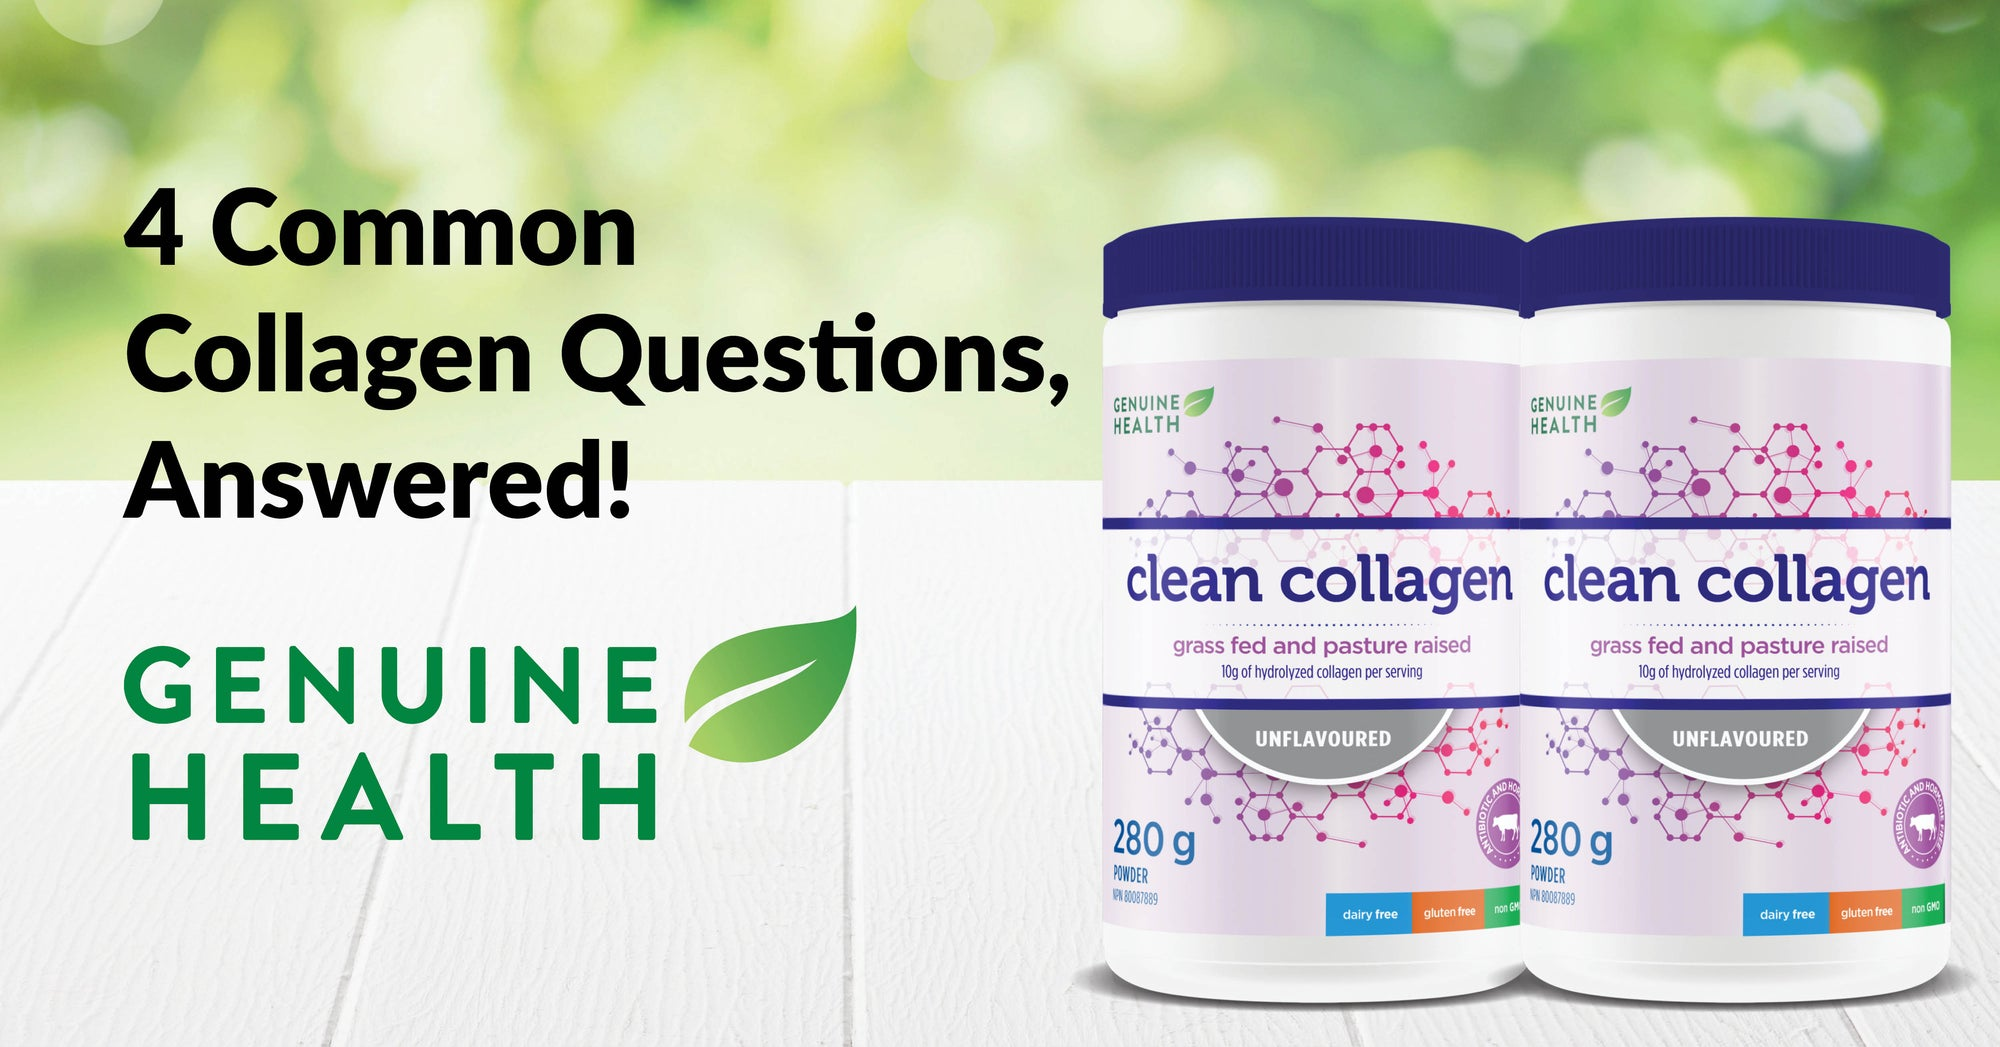 4 Common Collagen Questions Answered